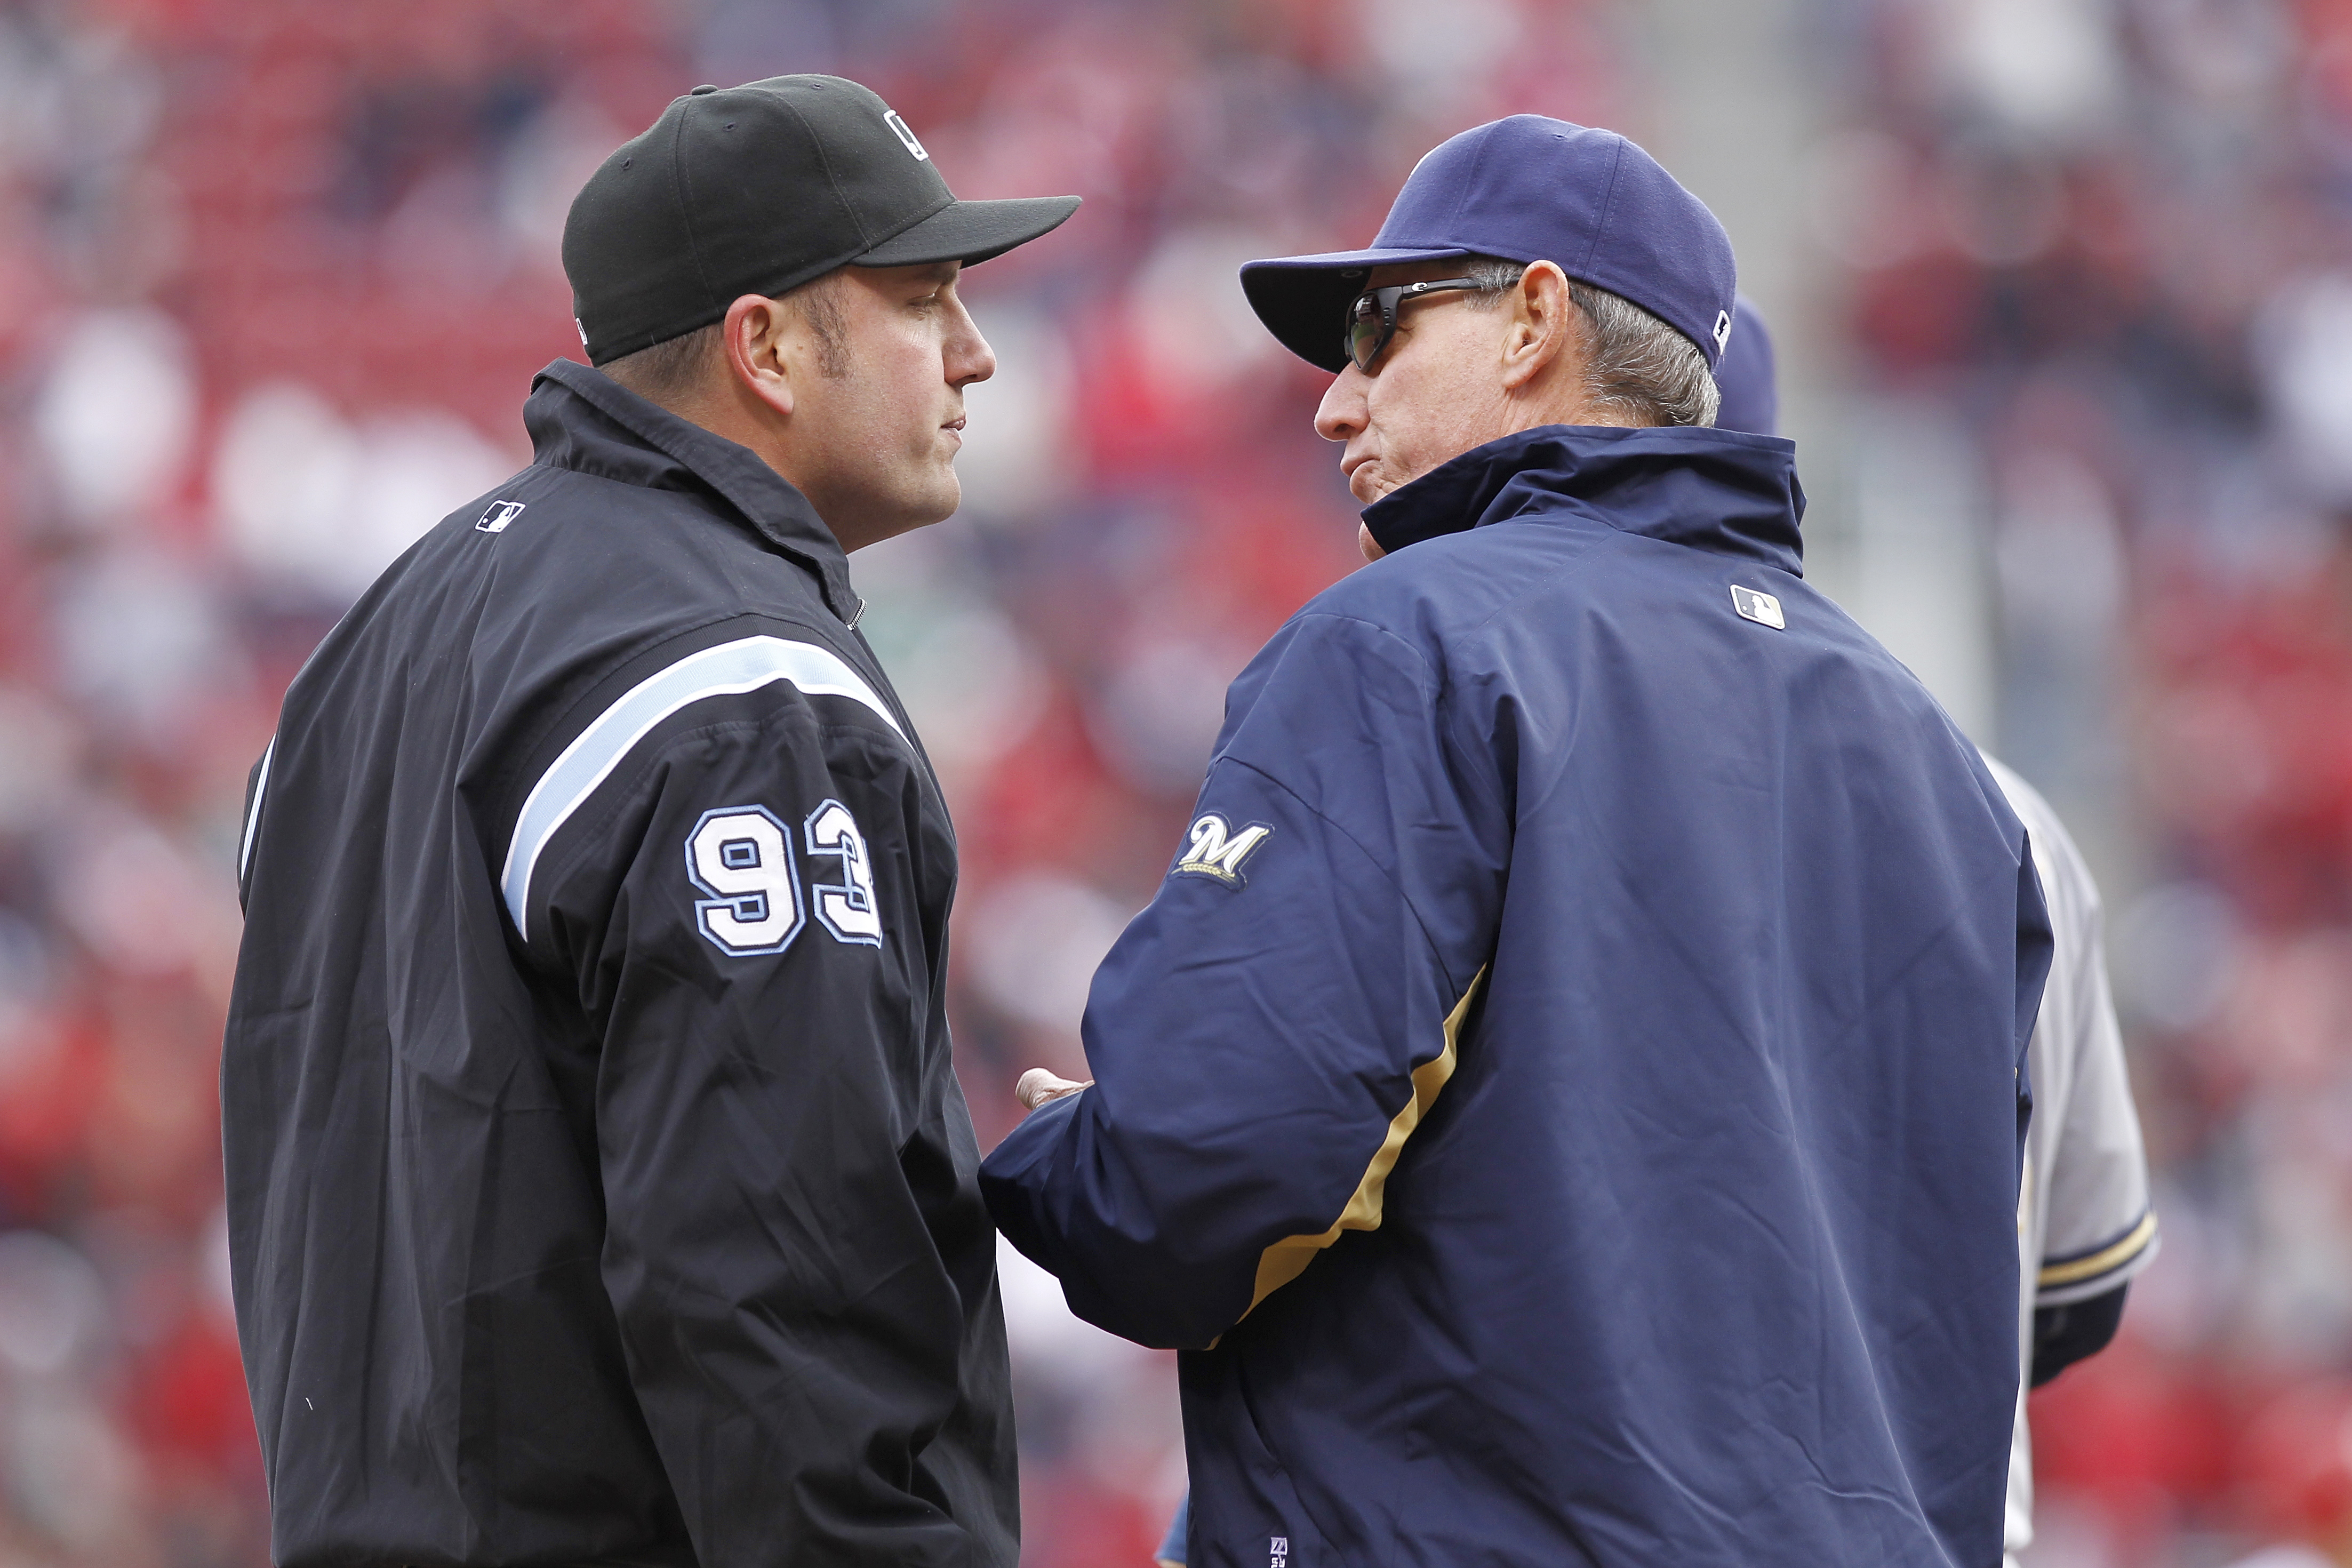 CINCINNATI, OH - MARCH 31: Milwaukee Brewers manager Ron Roenicke argues with third base umpire Dan Bellino after Casey McGehee missed a tag on Brandon Phillips of the Cincinnati Reds in the opening day game at Great American Ballpark on March 31, 2011 in